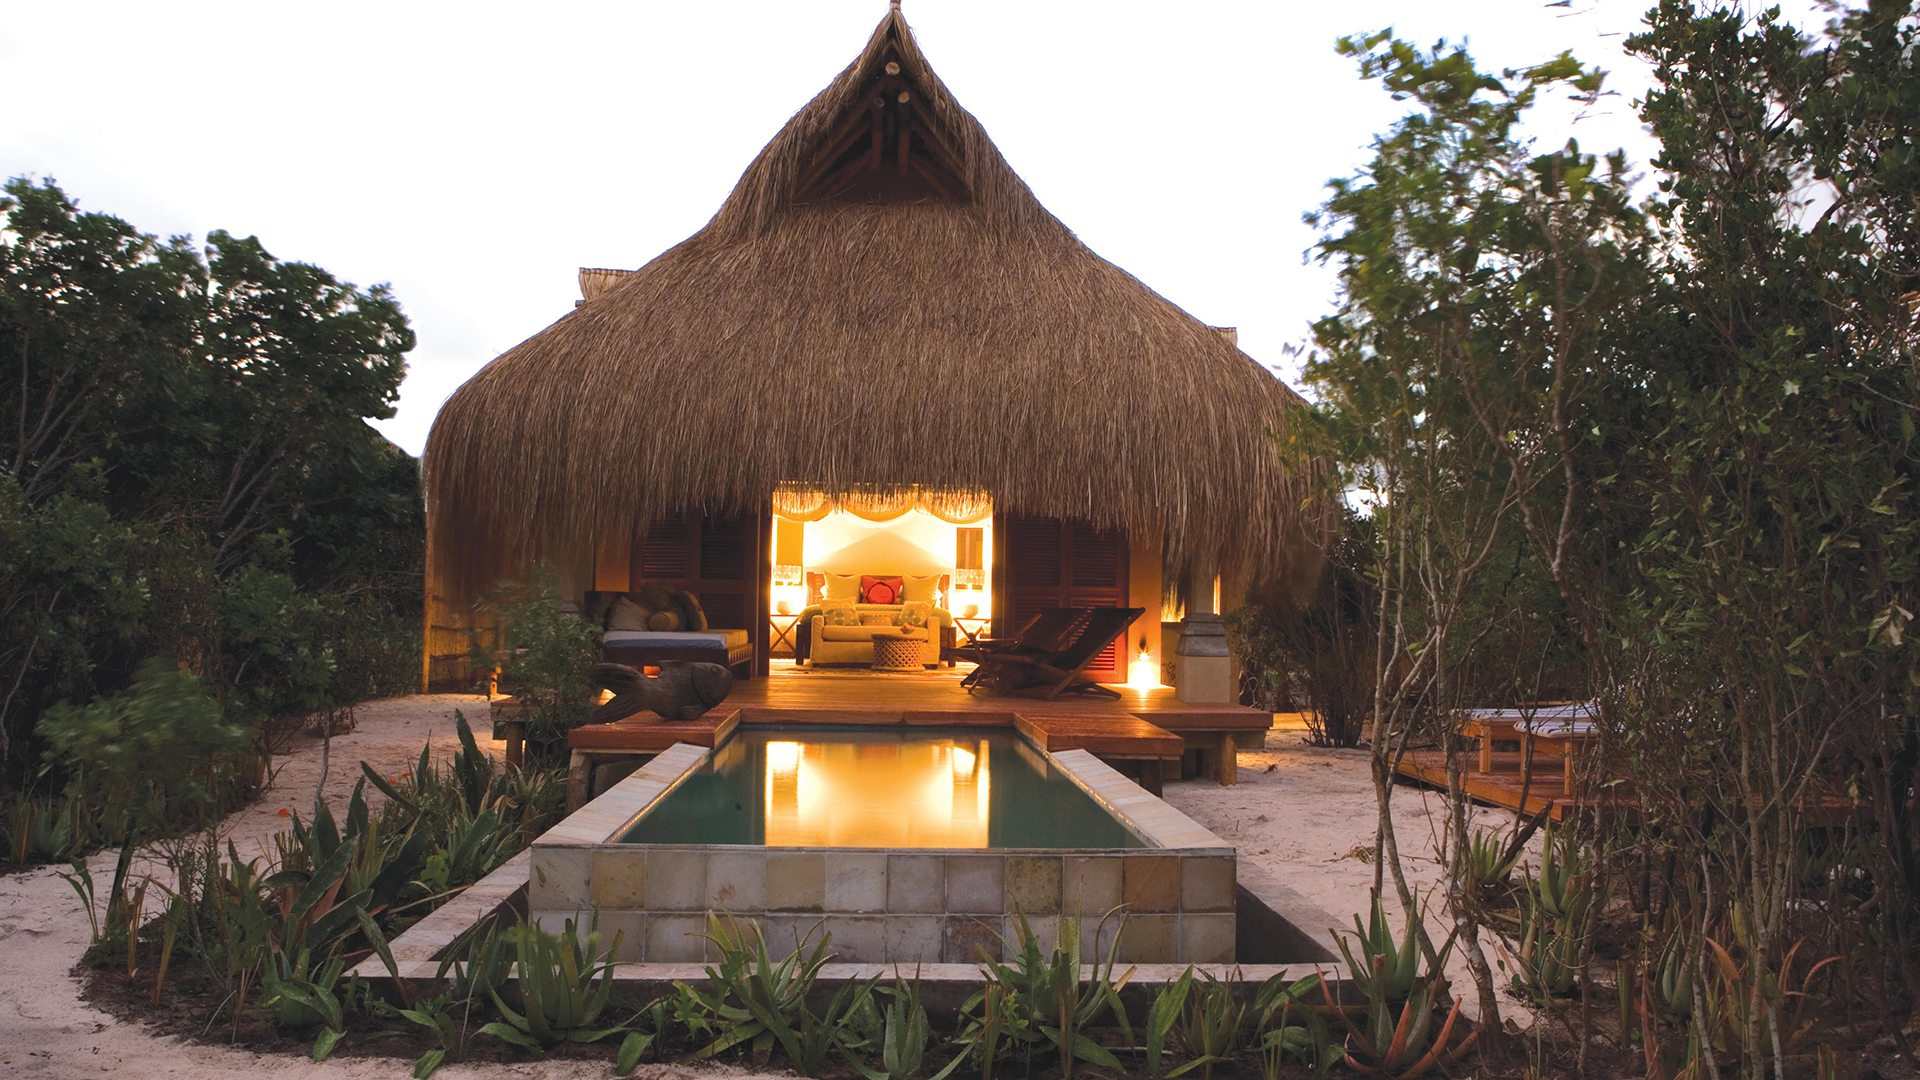 Azura Hotel Luxury Thatched Villas on the Sunny Shores of Benguerra Island